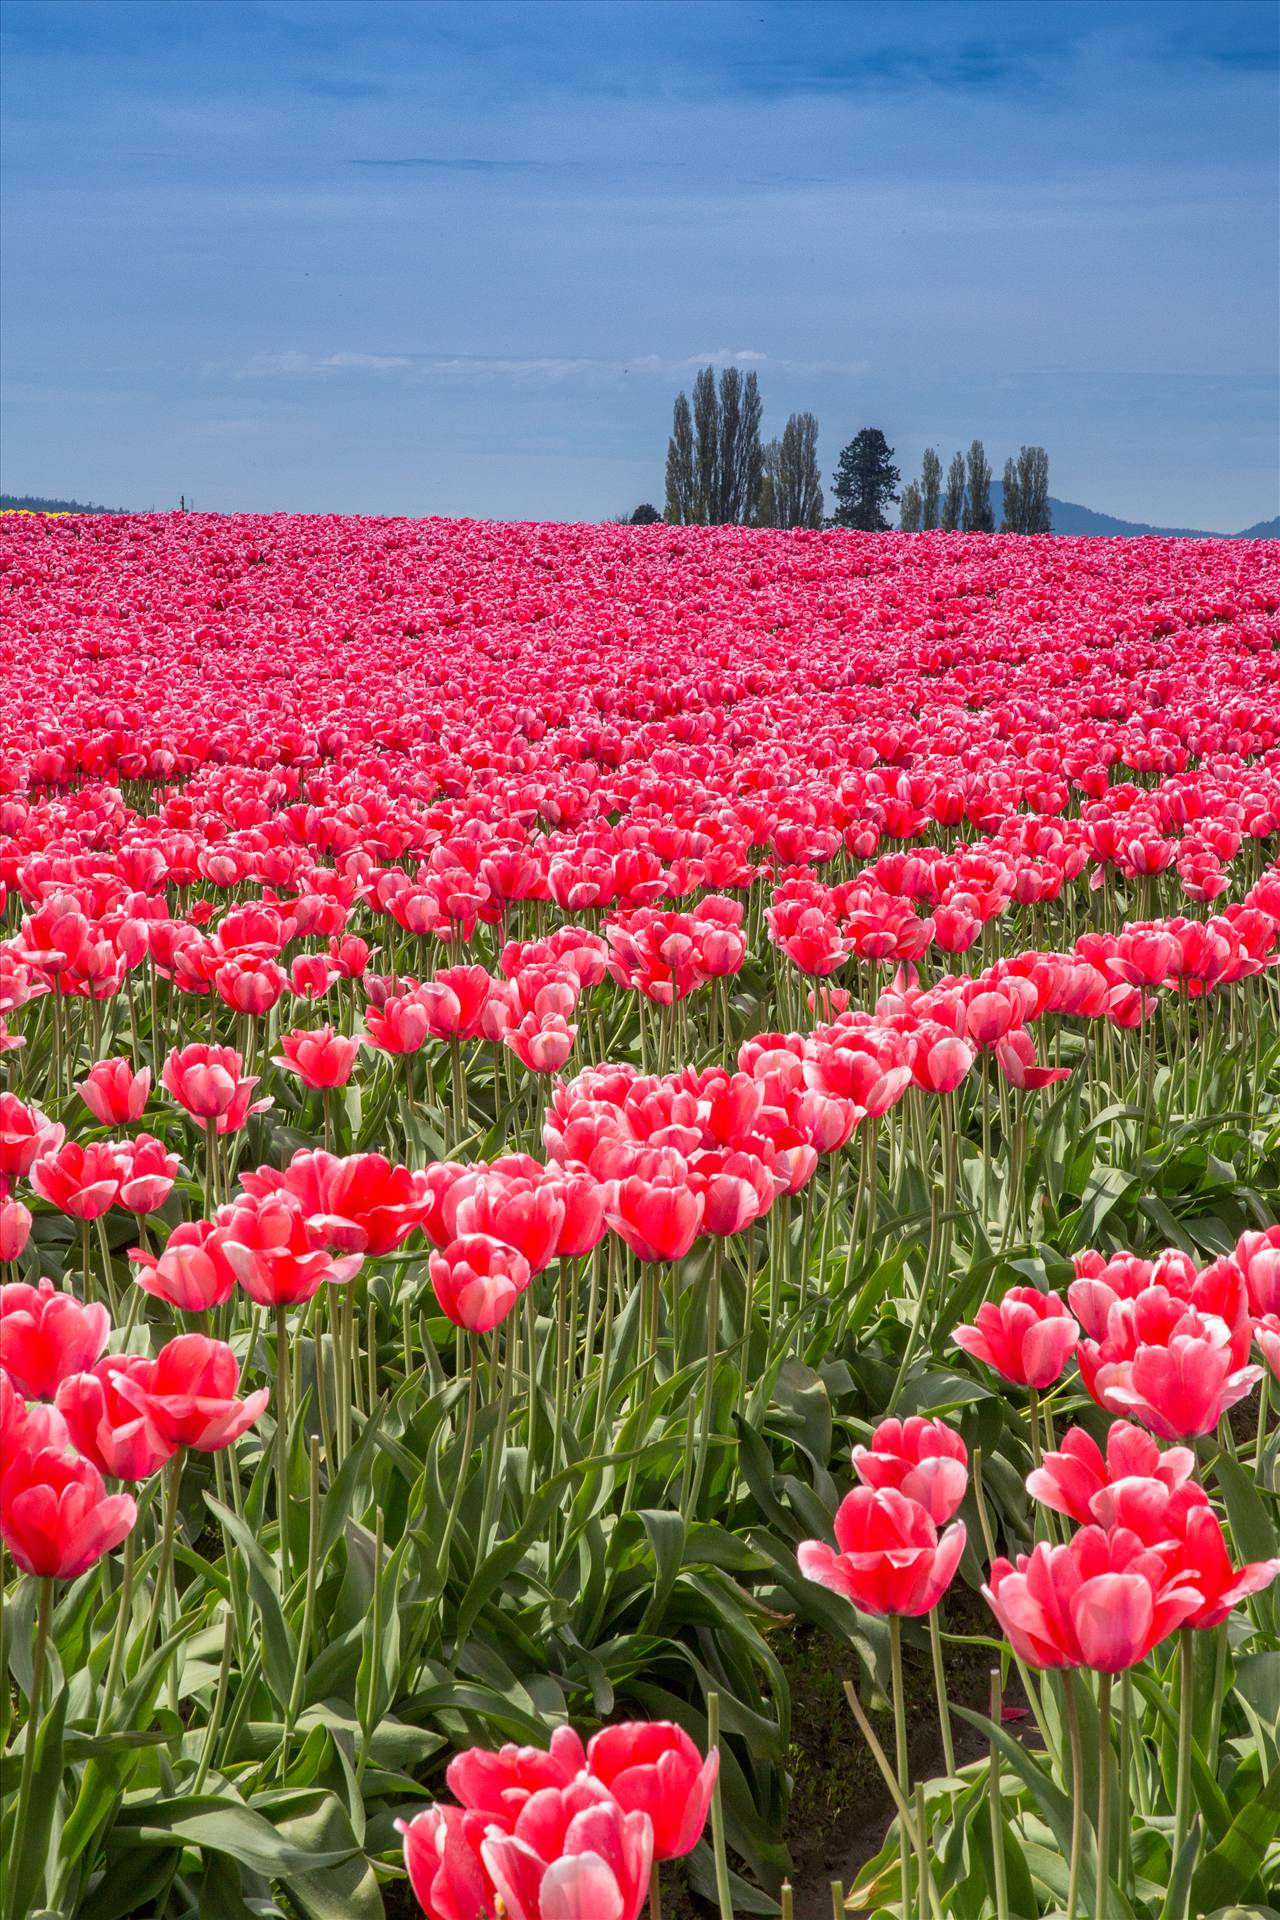 Tulips 3 - From the Skagit County Tulip Festival, 2012. by D Scott Smith